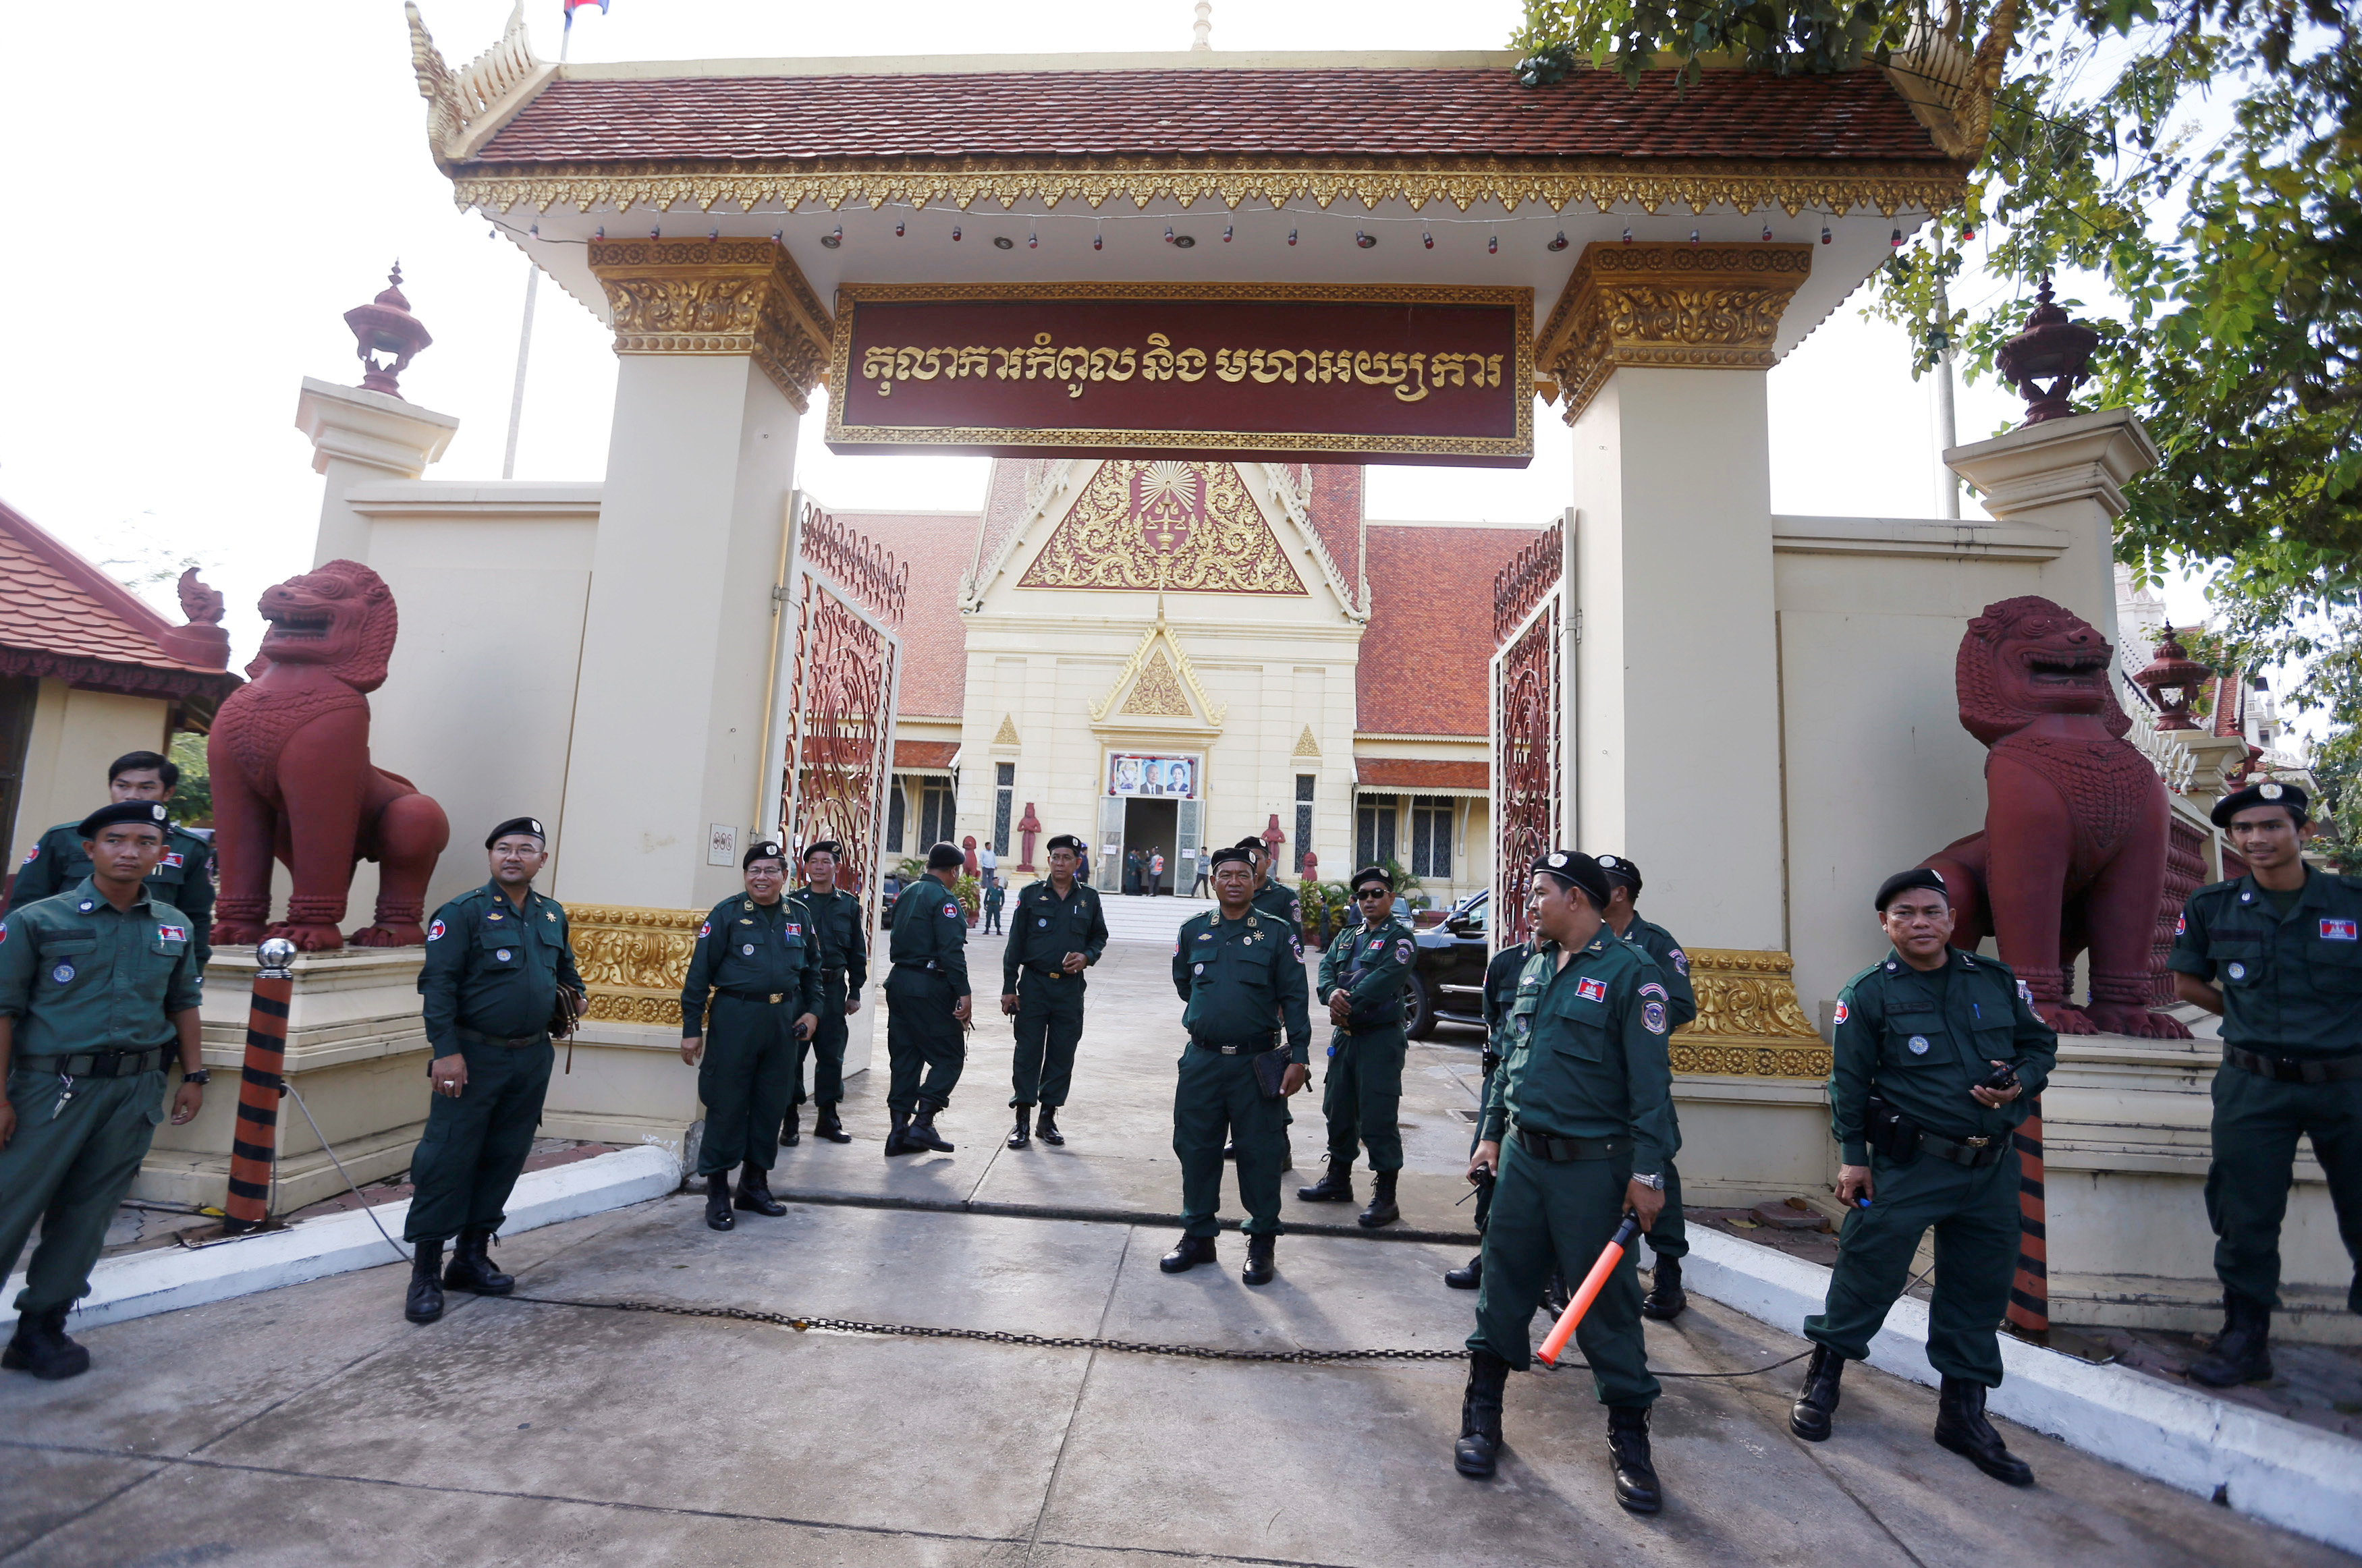 Police officers stand guard at the Supreme Court during a hearing to decide whether to dissolve the main opposition Cambodia National Rescue Party (CNRP), in Phnom Penh, Cambodia, November 16, 2017. — Reuters pic